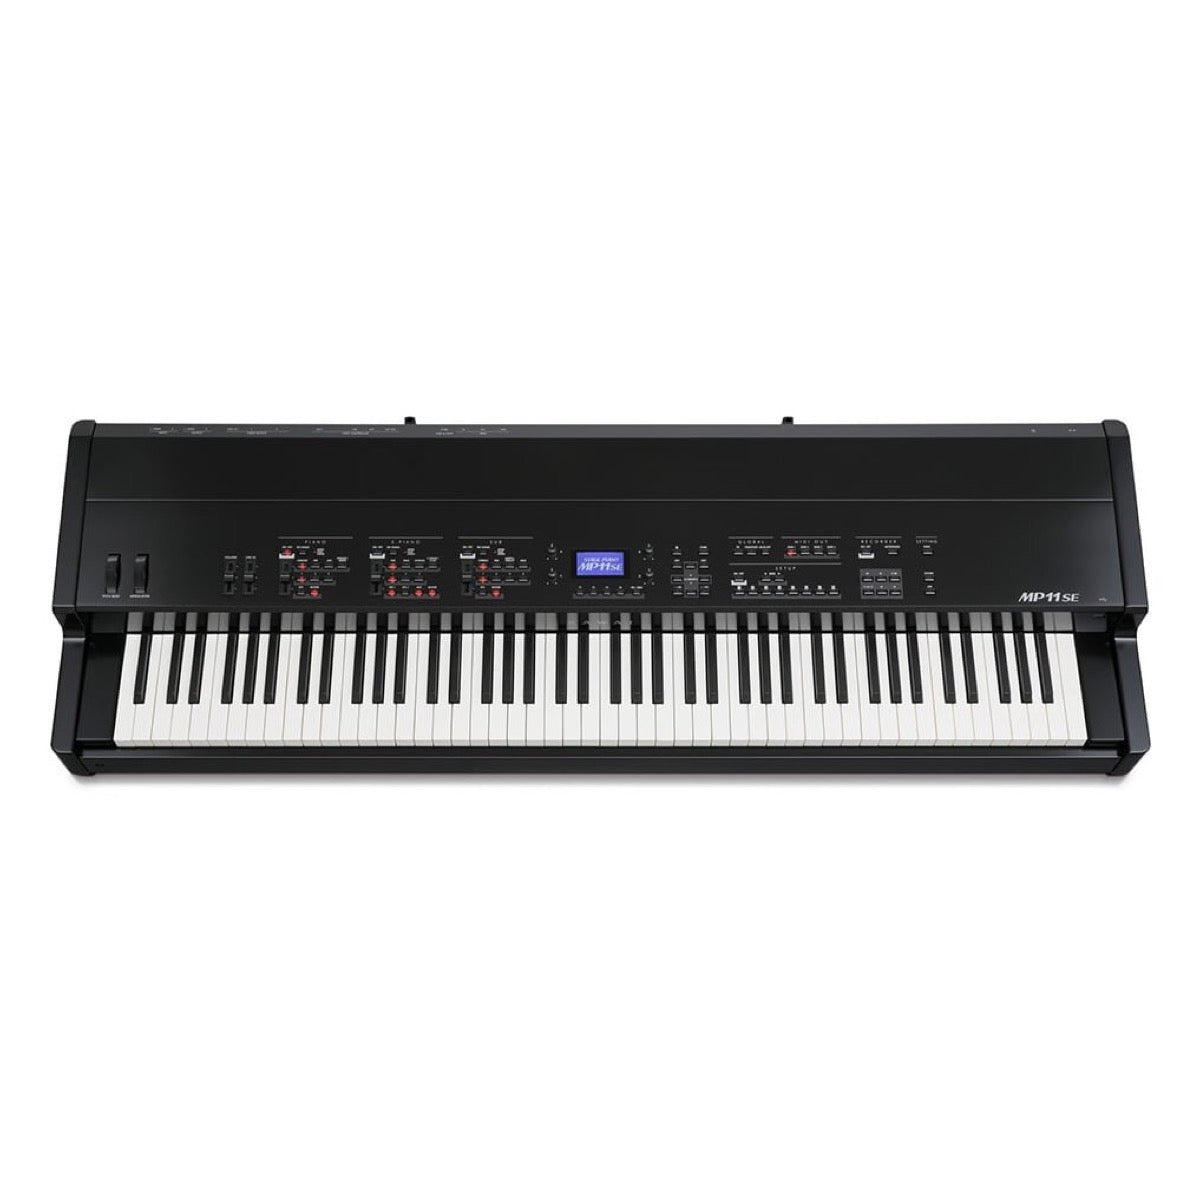 Kawai MP-11SE Digital Stage Piano